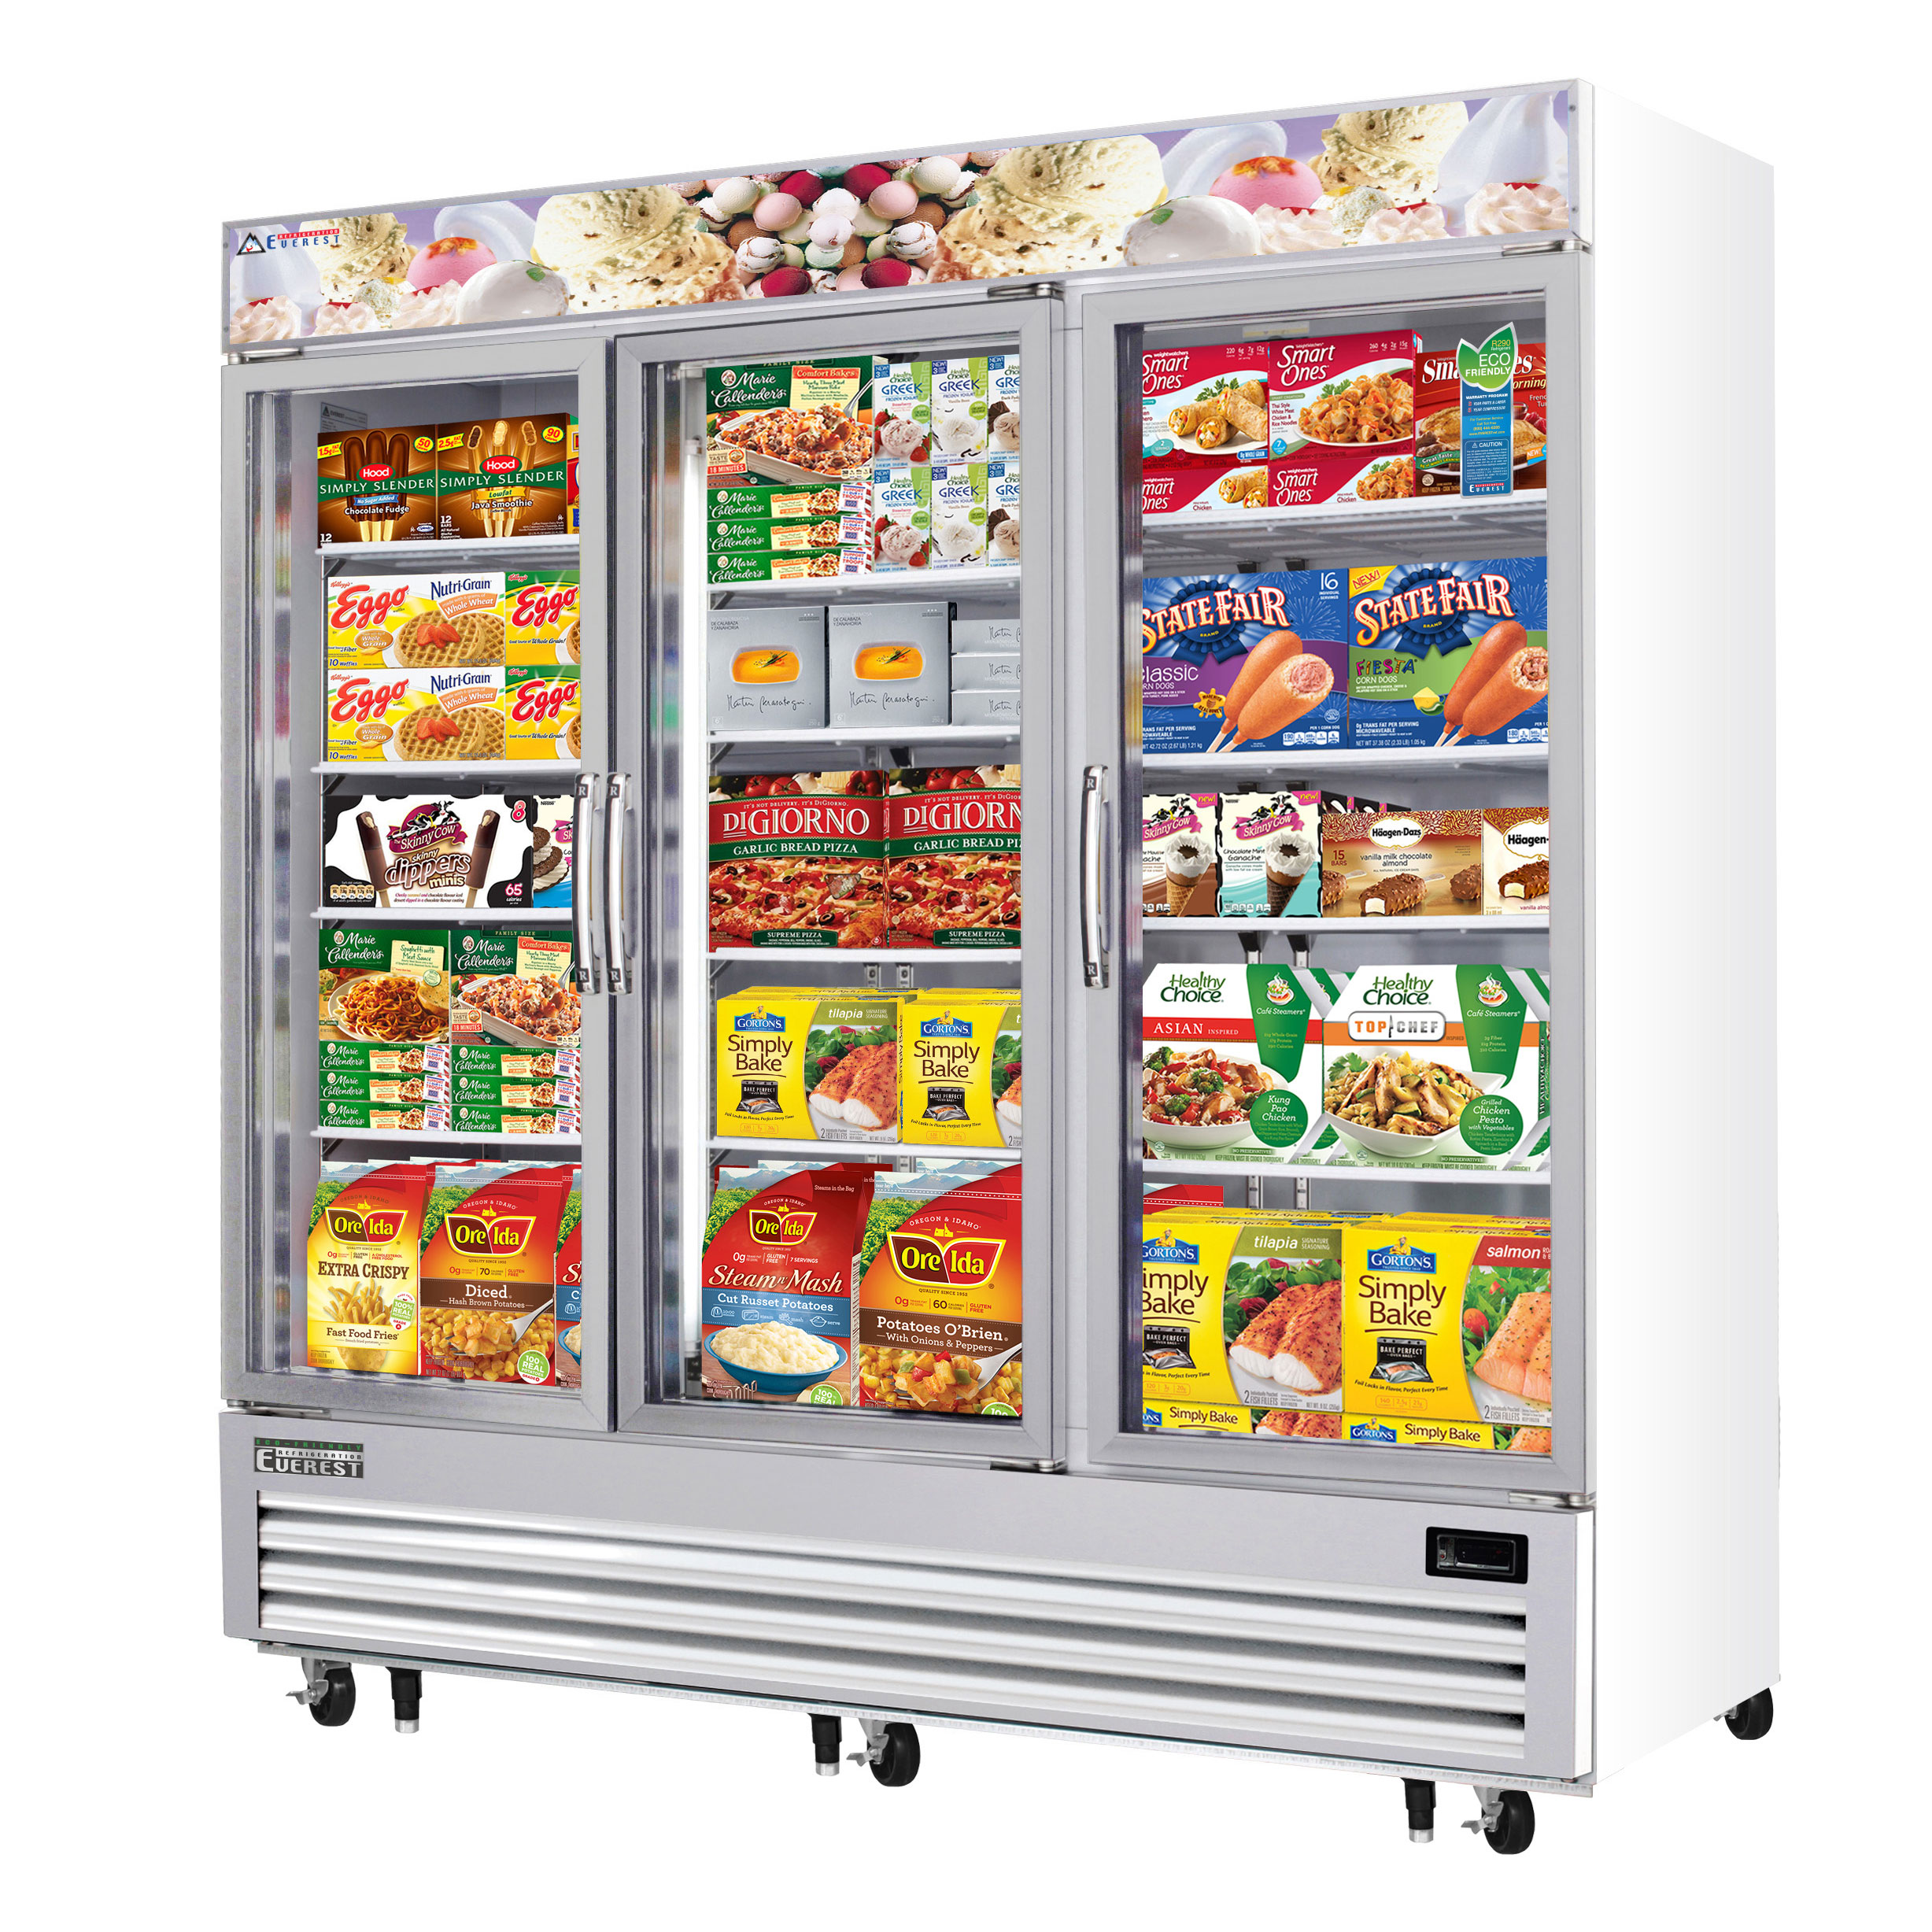 Everest Refrigeration EMGF69 freezer, merchandiser